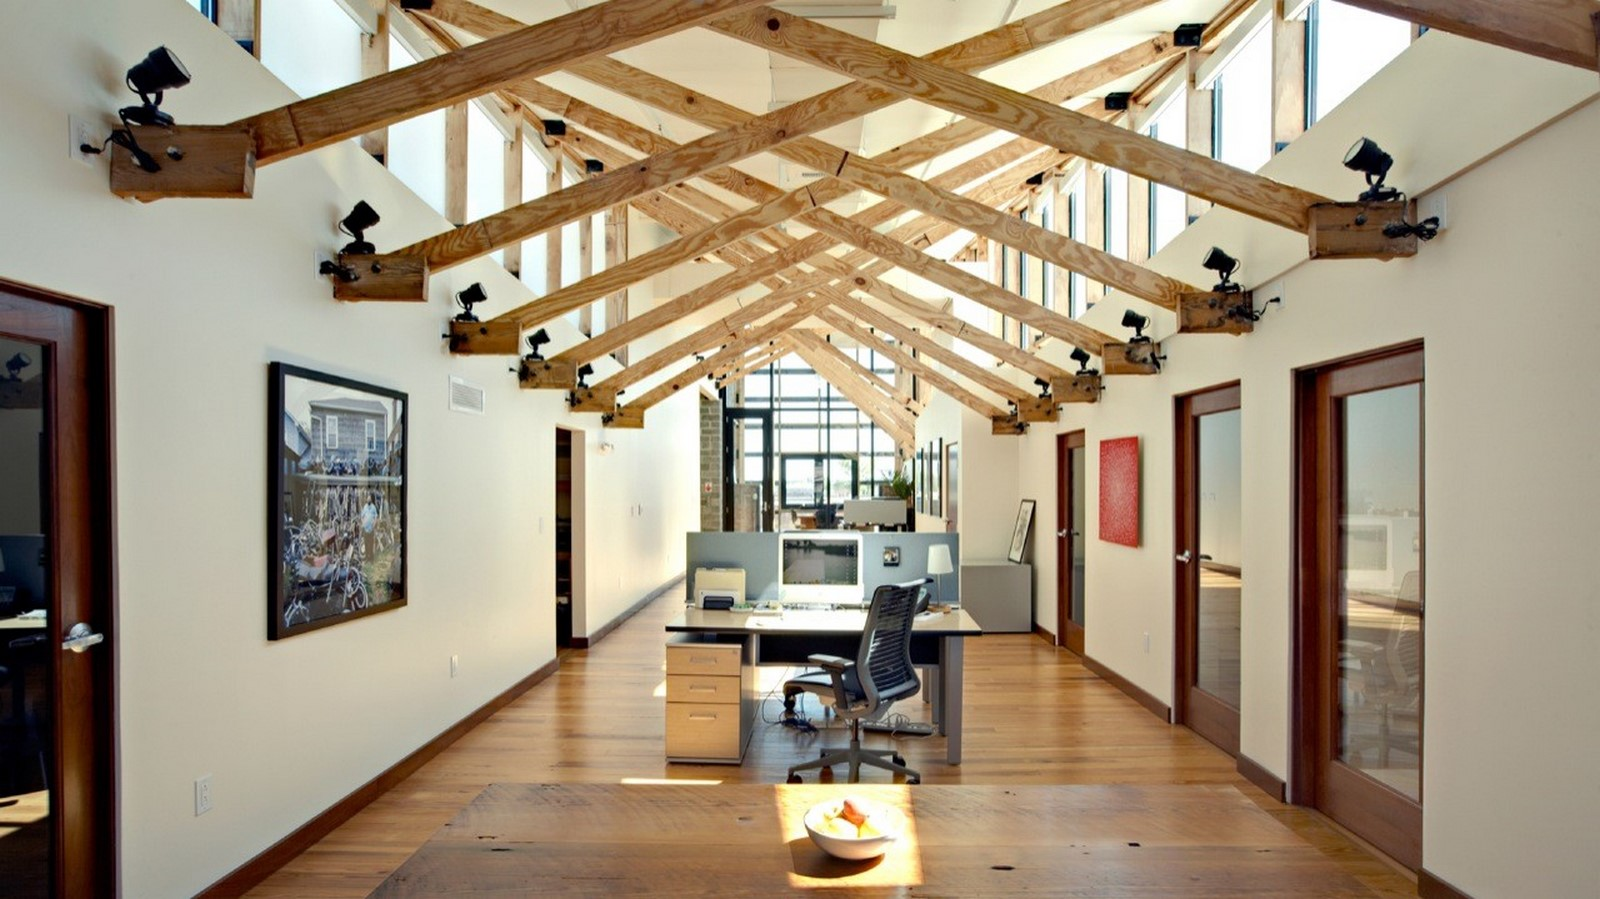 15 Historical Buildings With Modern Interiors - Sheet7